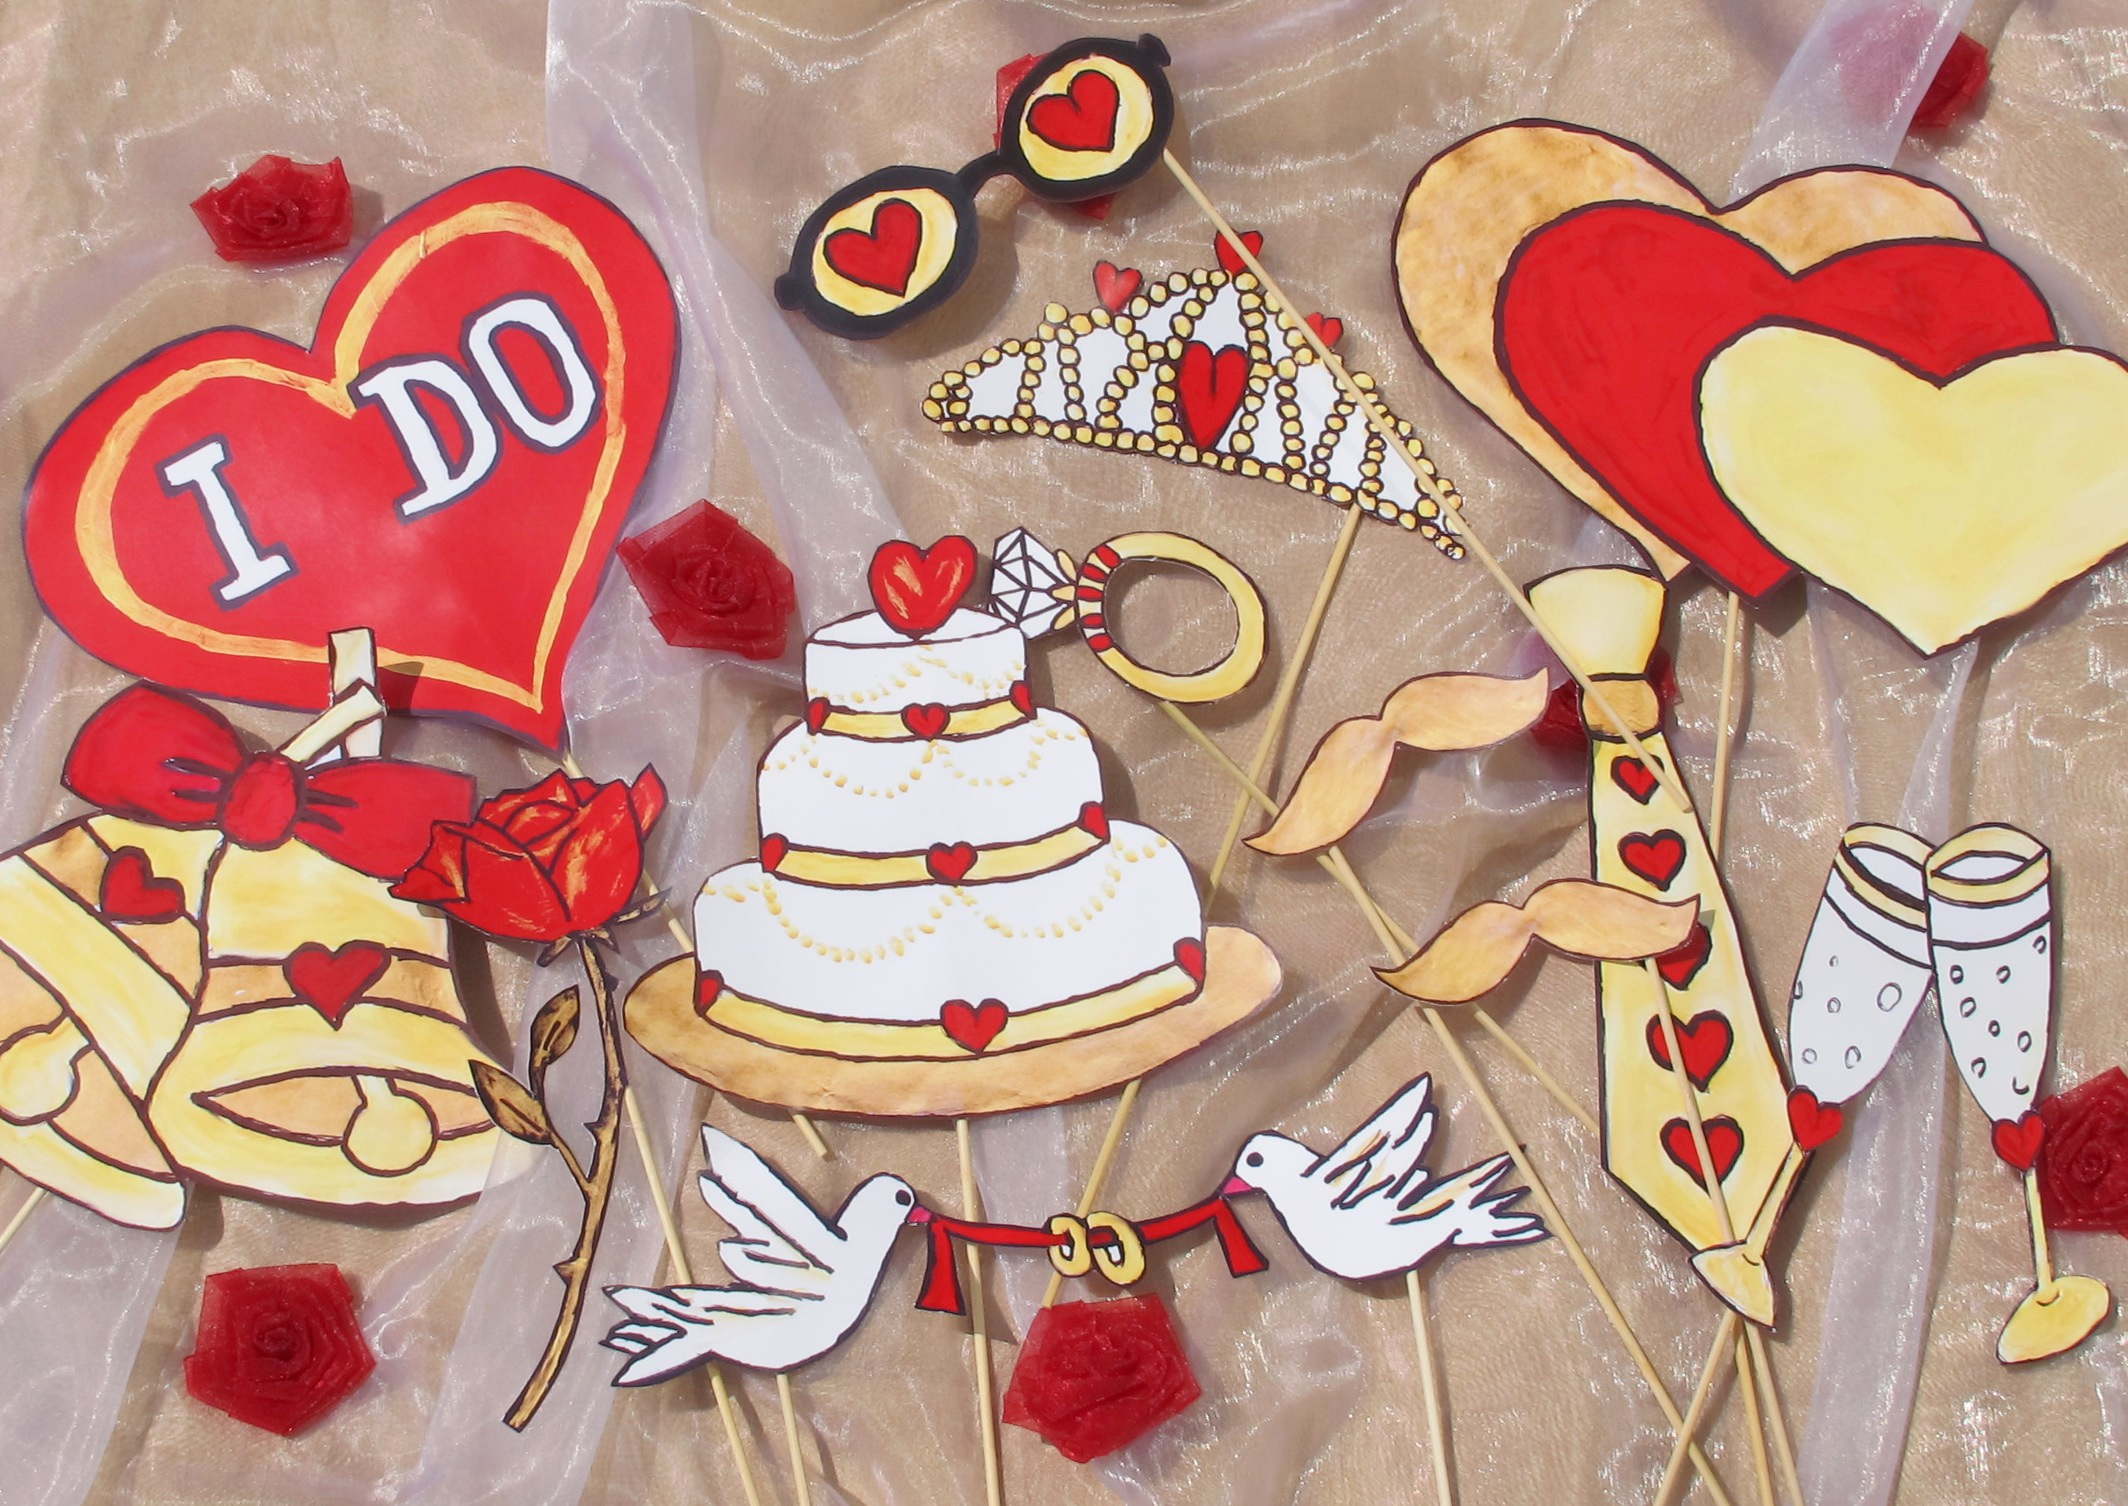 are you crazy in love engagement or wedding photo booth props wedding photo booth props They